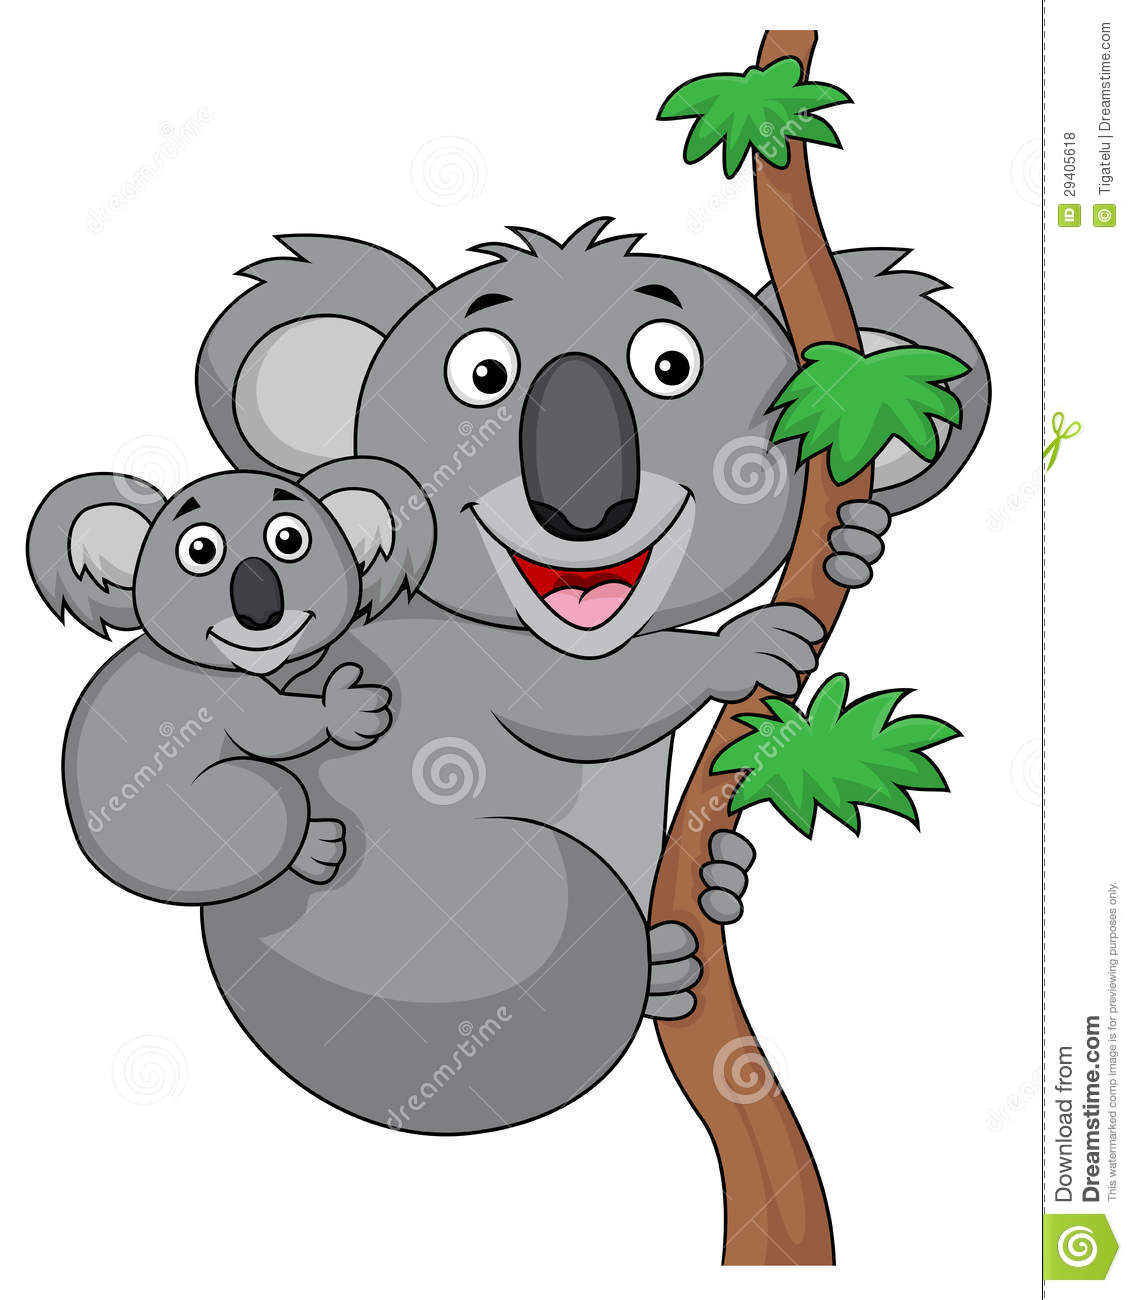 Mother And Baby Koala Cartoon Royalty Free Stock Photos - Image ...